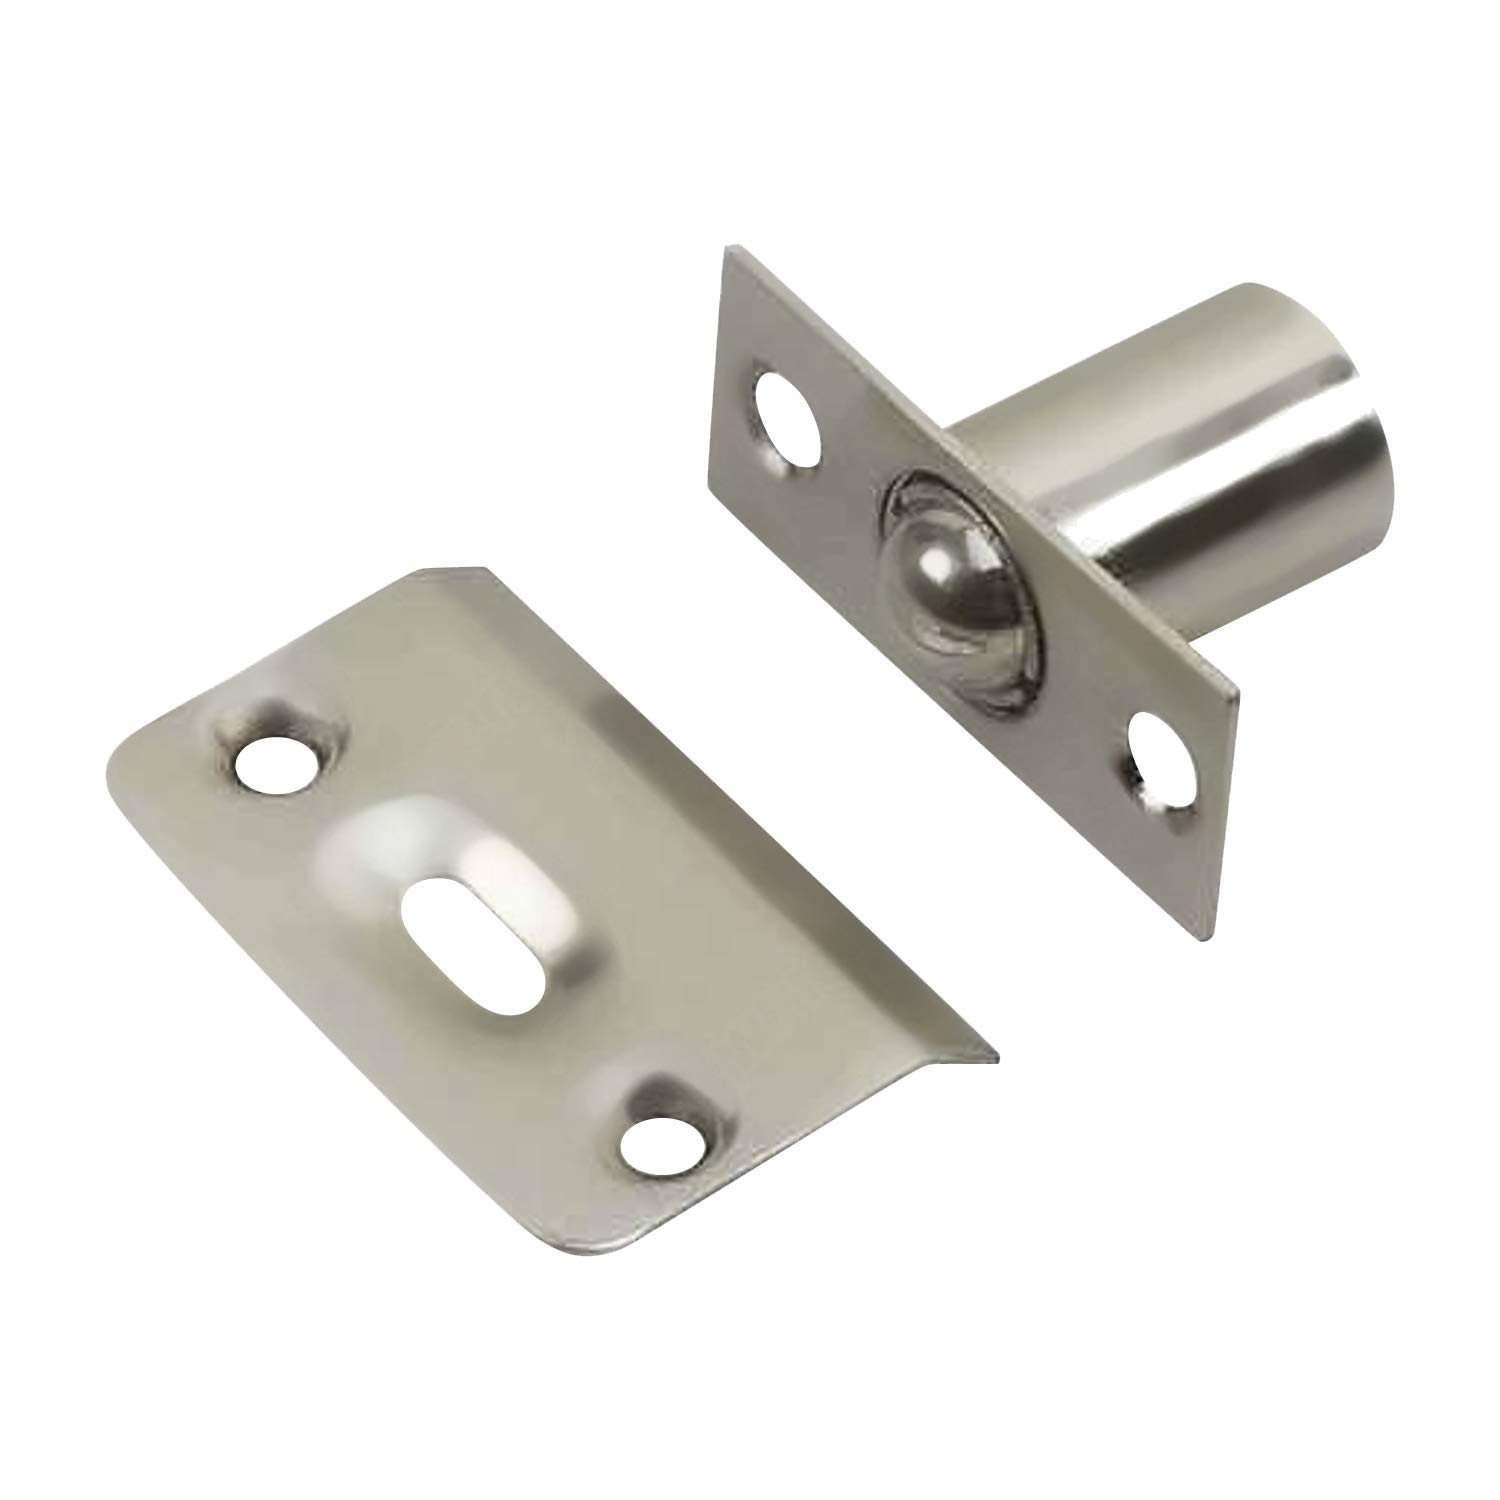 2 Pack Rok Hardware Brushed Nickel Adjustable Large Closet Cabinet Ball Catch Latch with Radius Corners and Strike